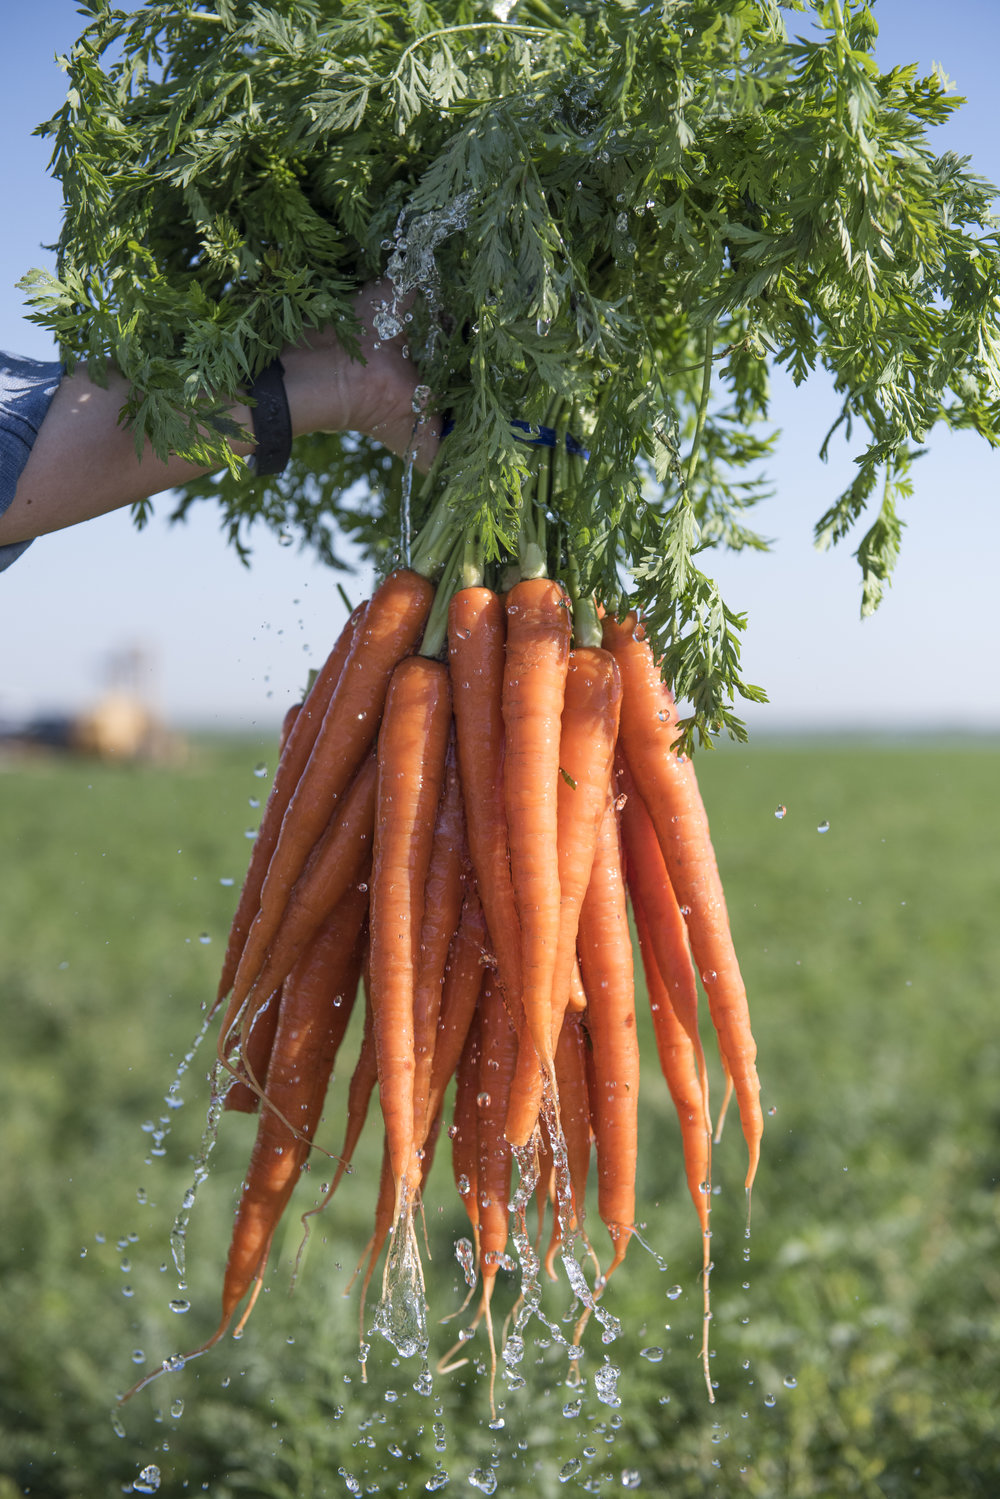 Bolthouse_Carrots_Sunrise-3765.jpg